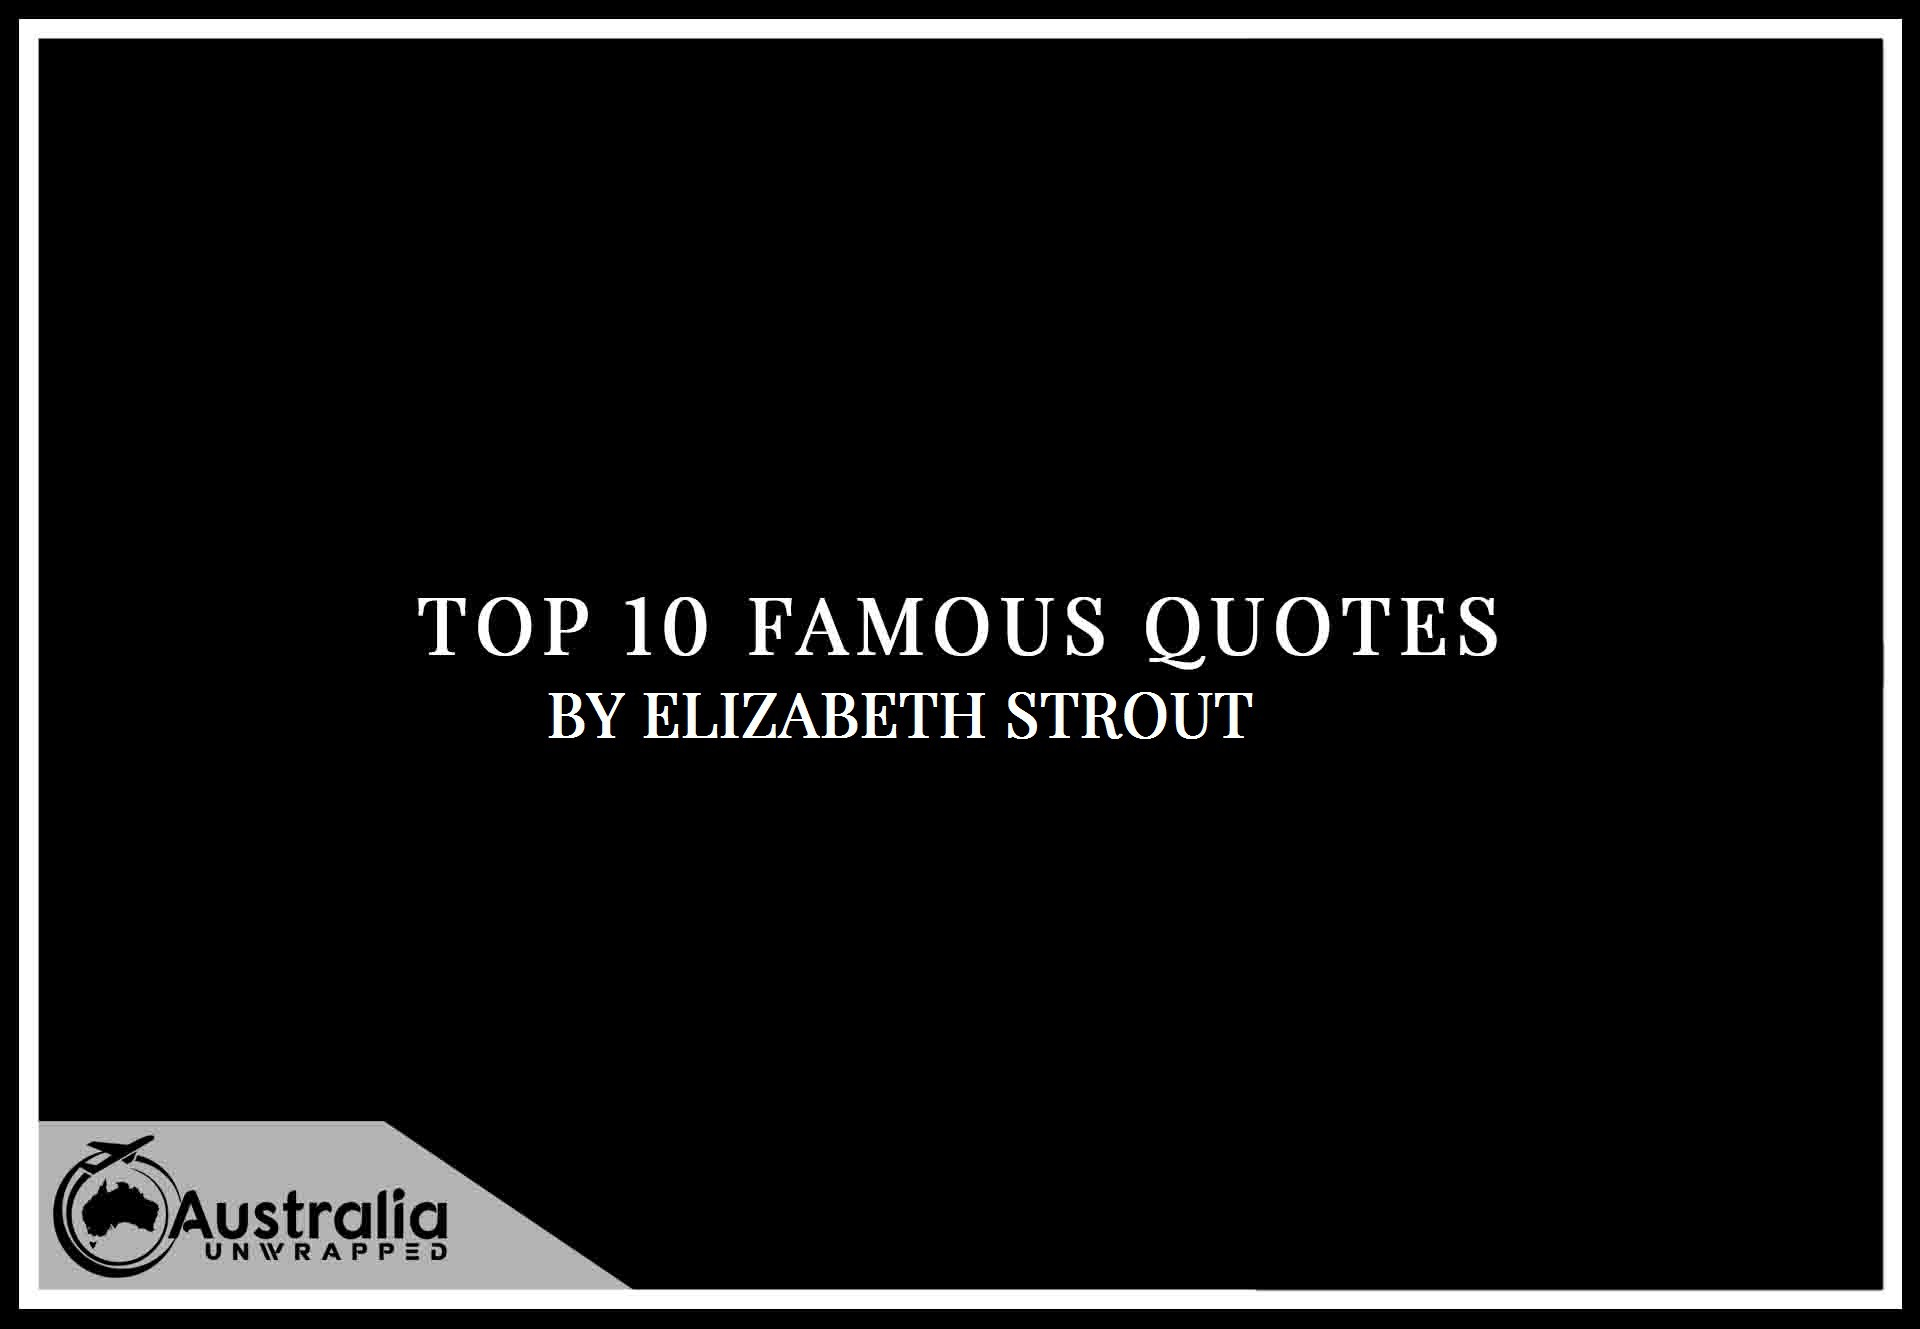 Elizabeth Strout's Top 10 Popular and Famous Quotes